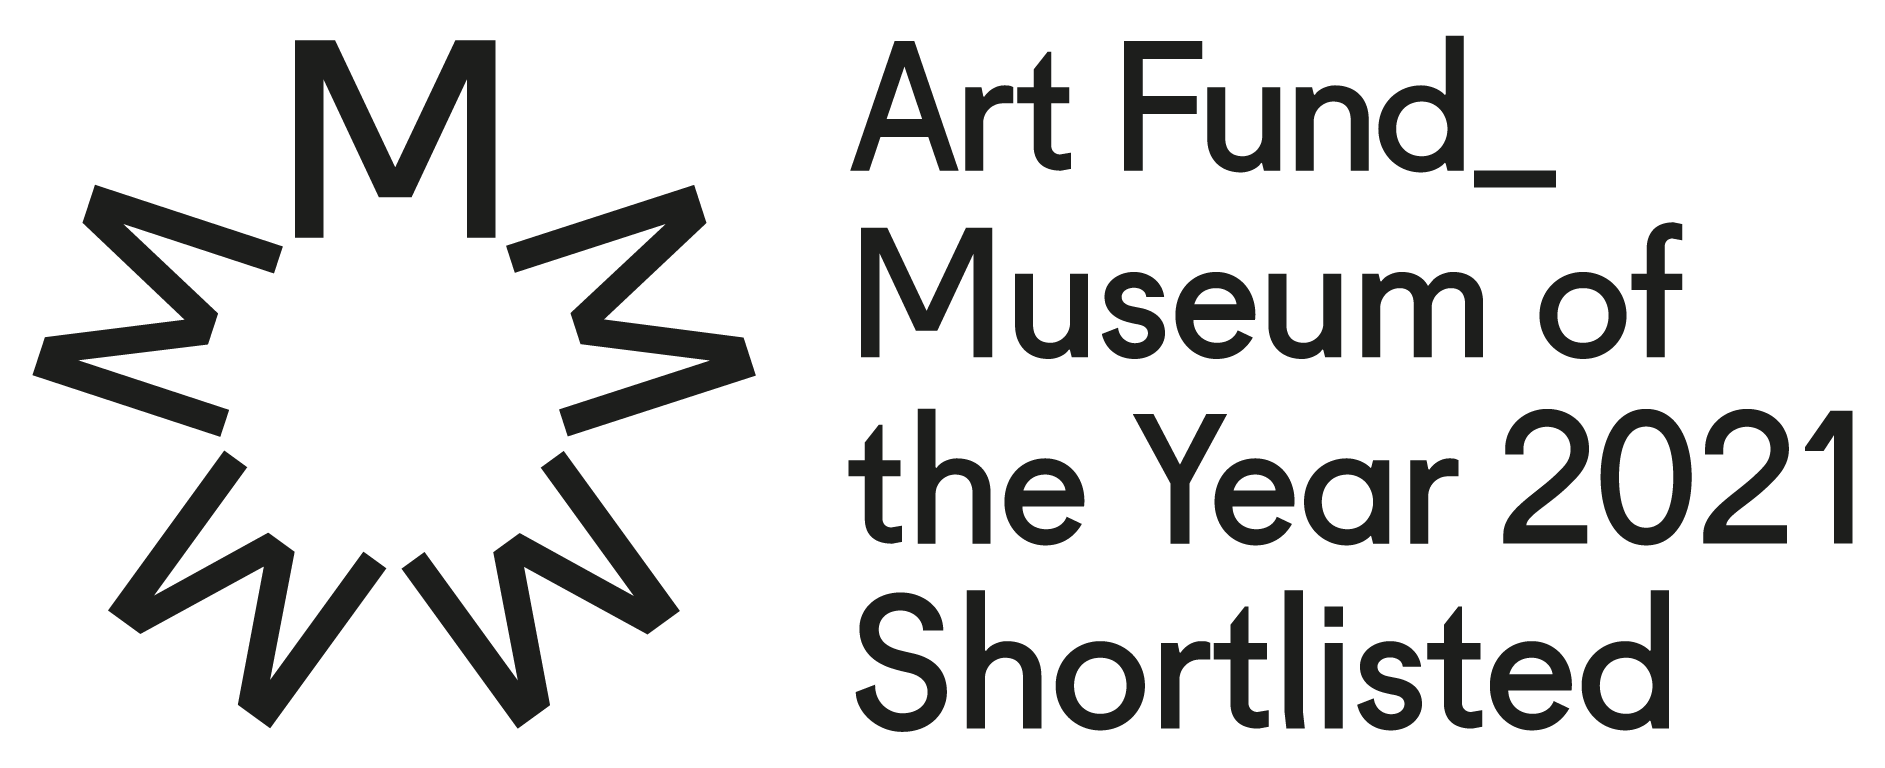 art fund museum of the year shortlisted